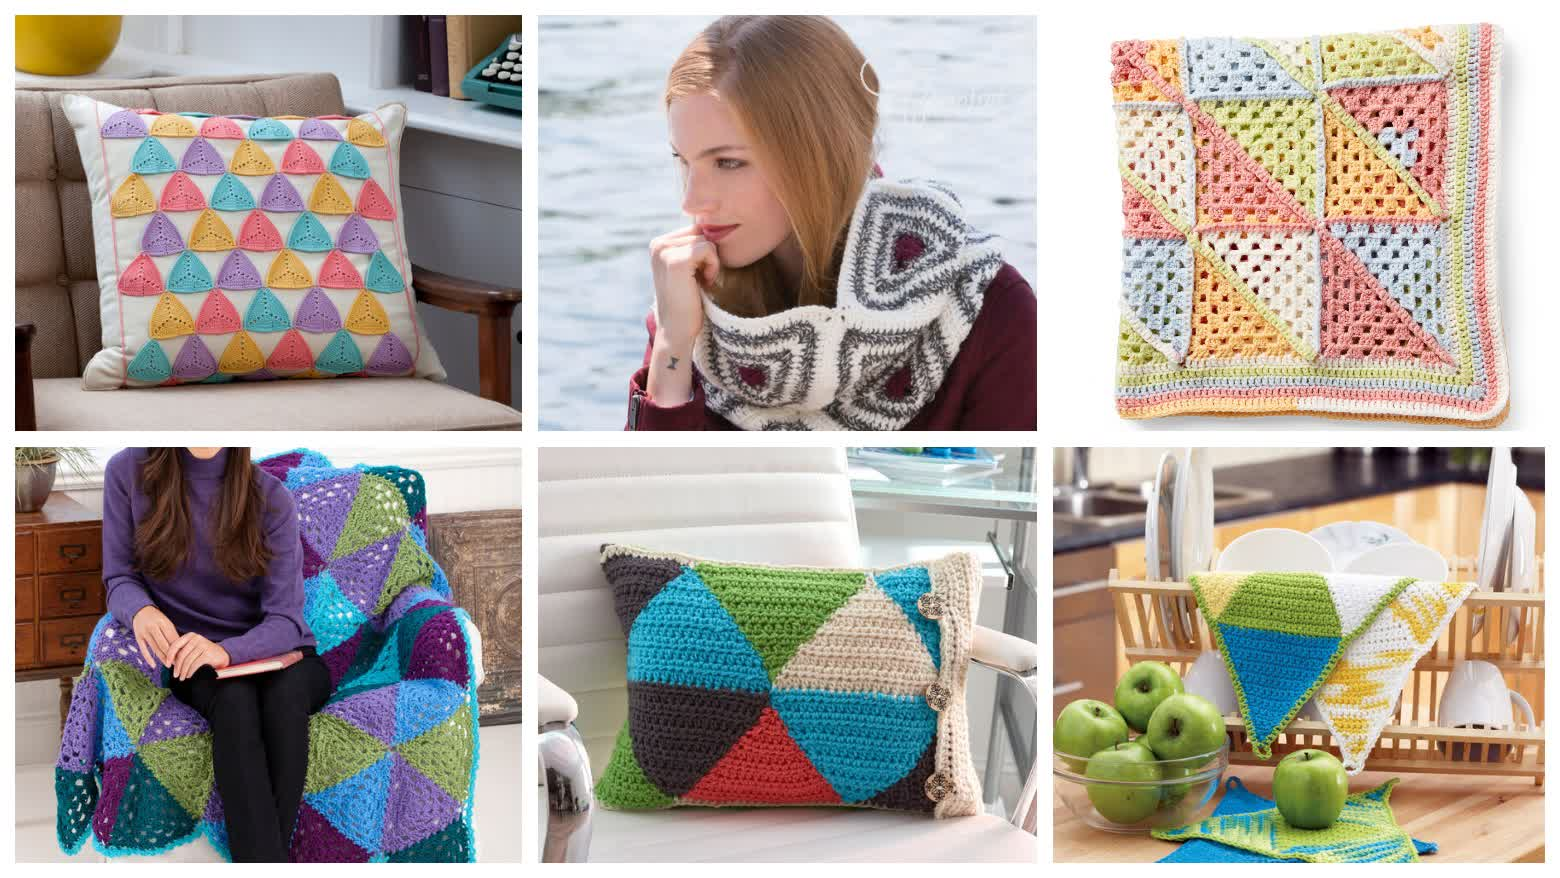 Crochet Fun With Triangle Patterns